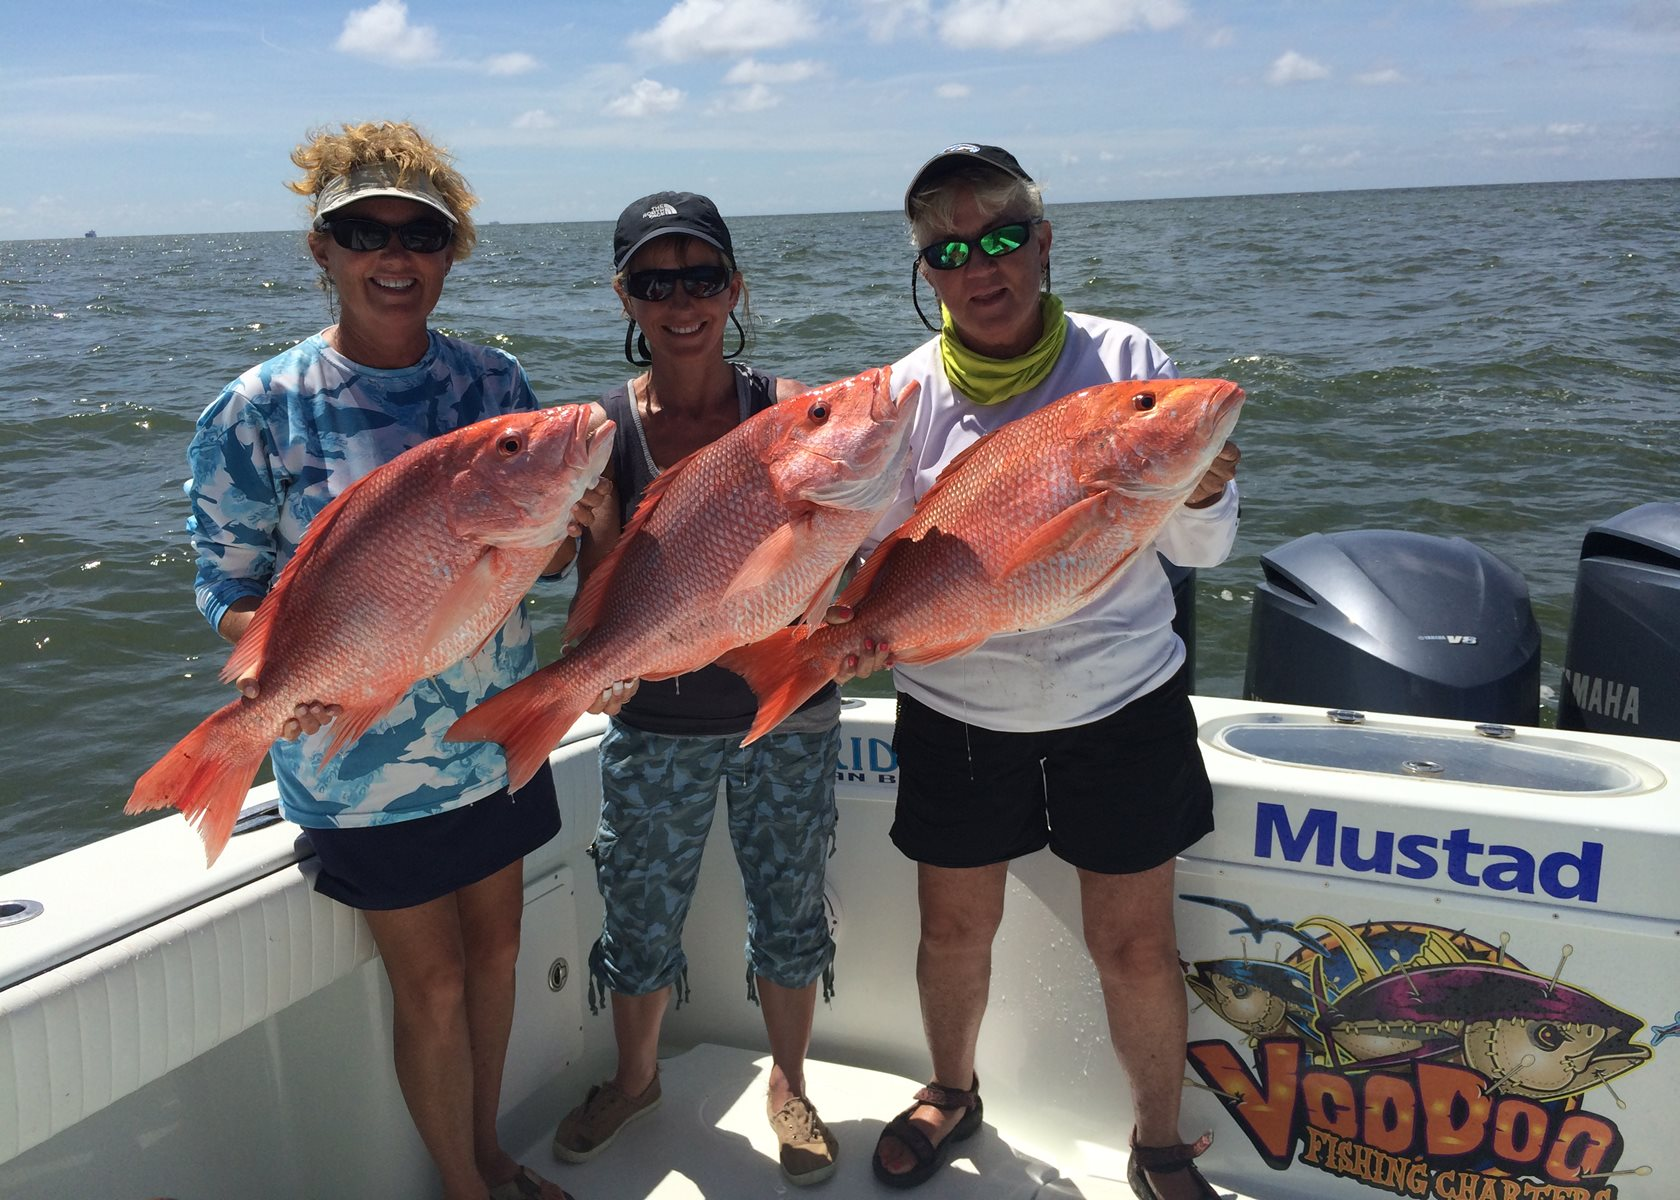 Deep Sea Fishing Louisiana | Voodoo Fishing Charters Photos